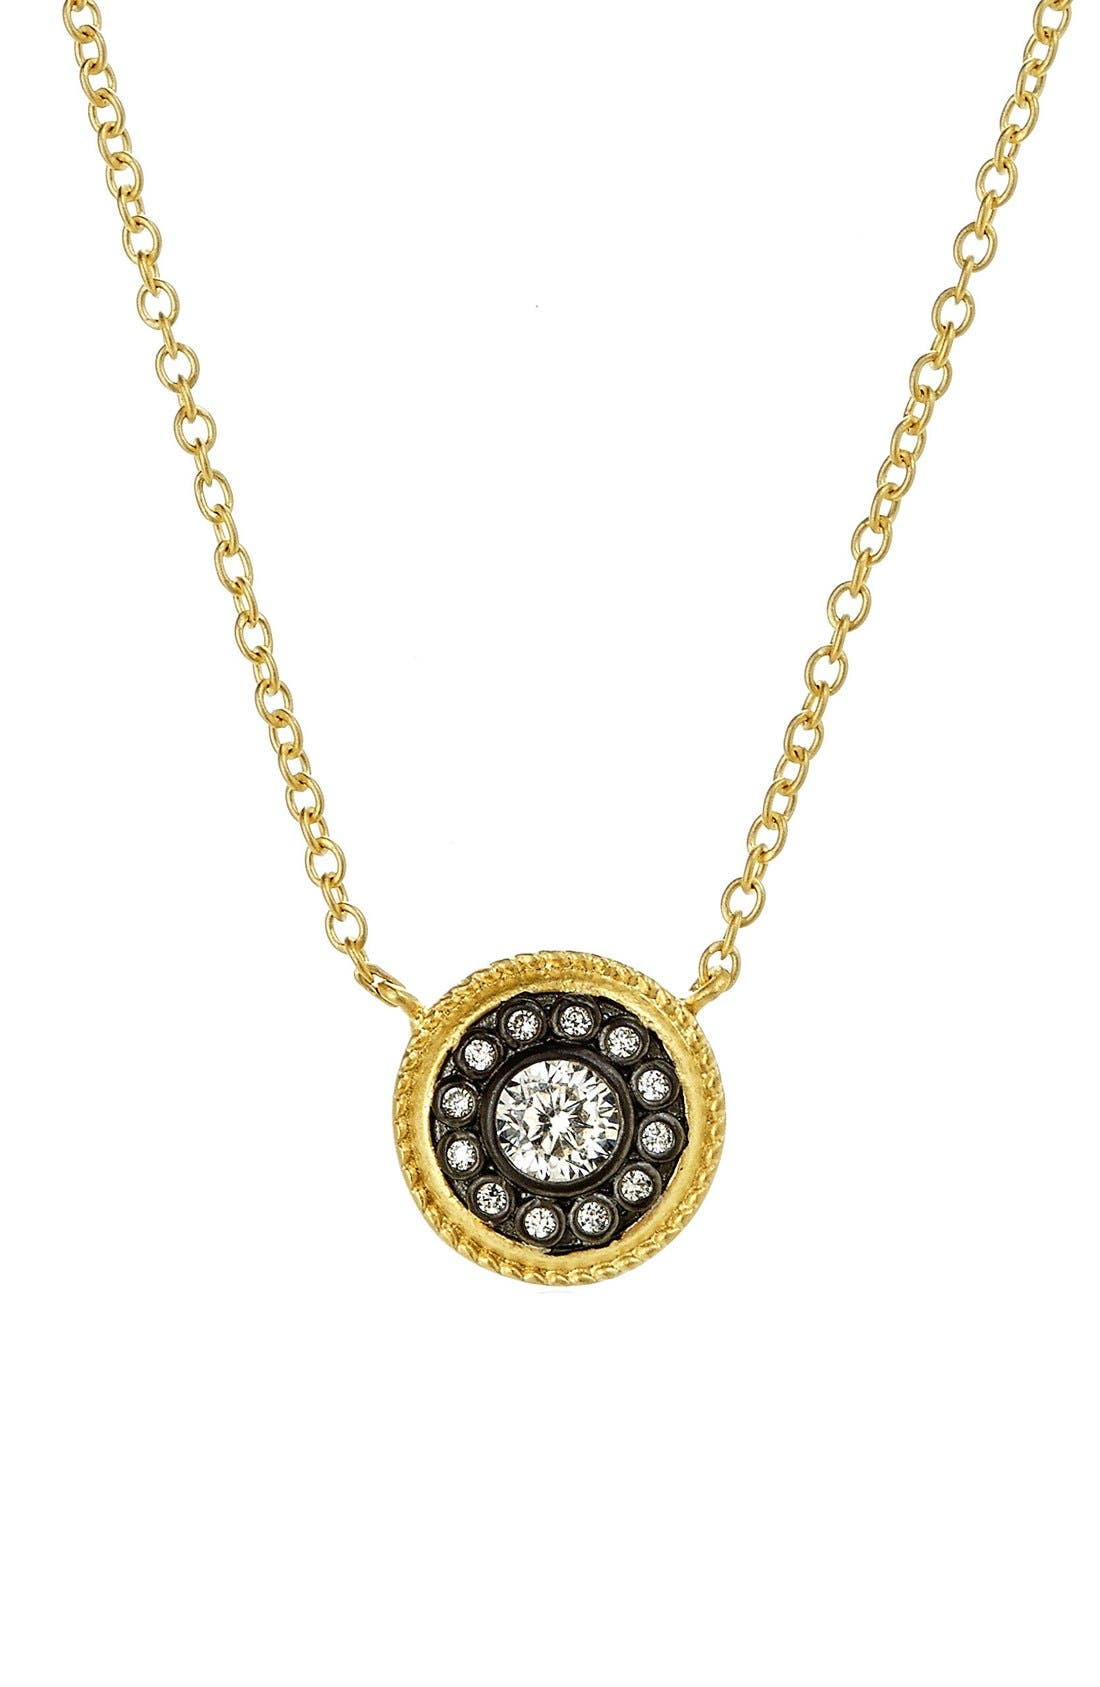 Main Image - FREIDA ROTHMAN 'Hamptons' Nautical Button Pendant Necklace